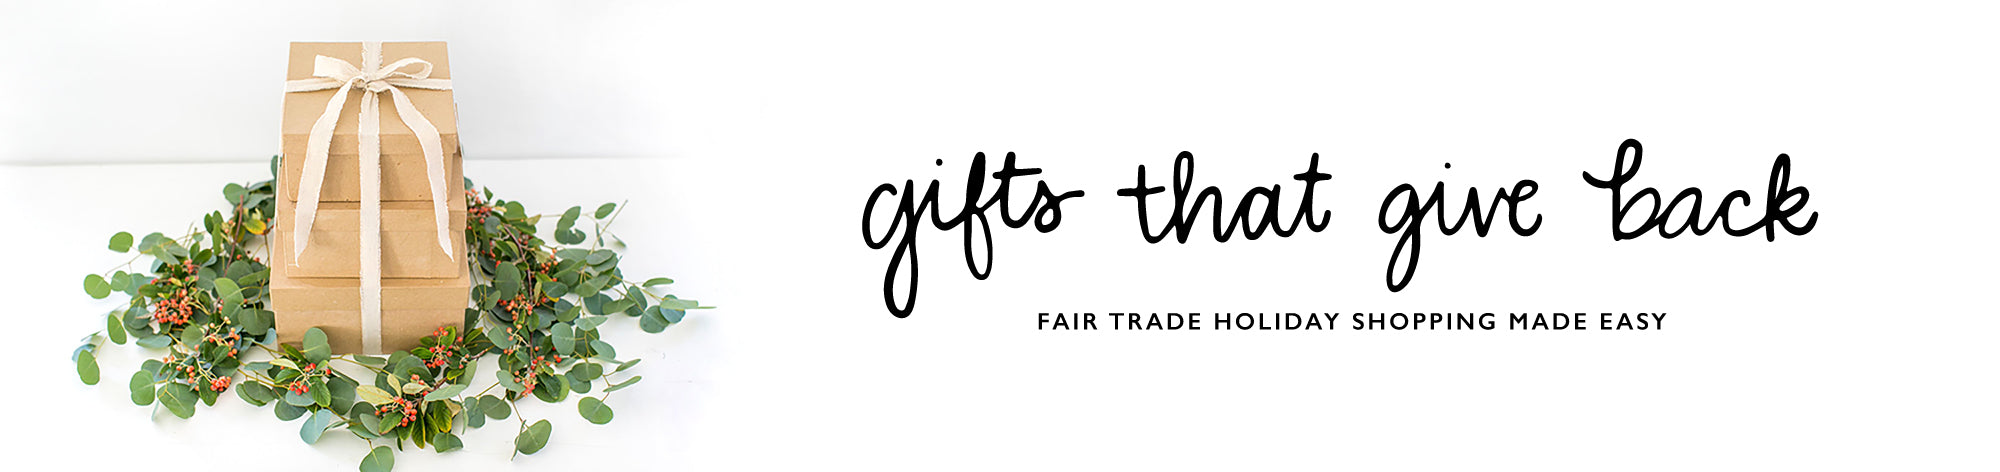 Fair Trade Gifts that Give Back | The Little Market